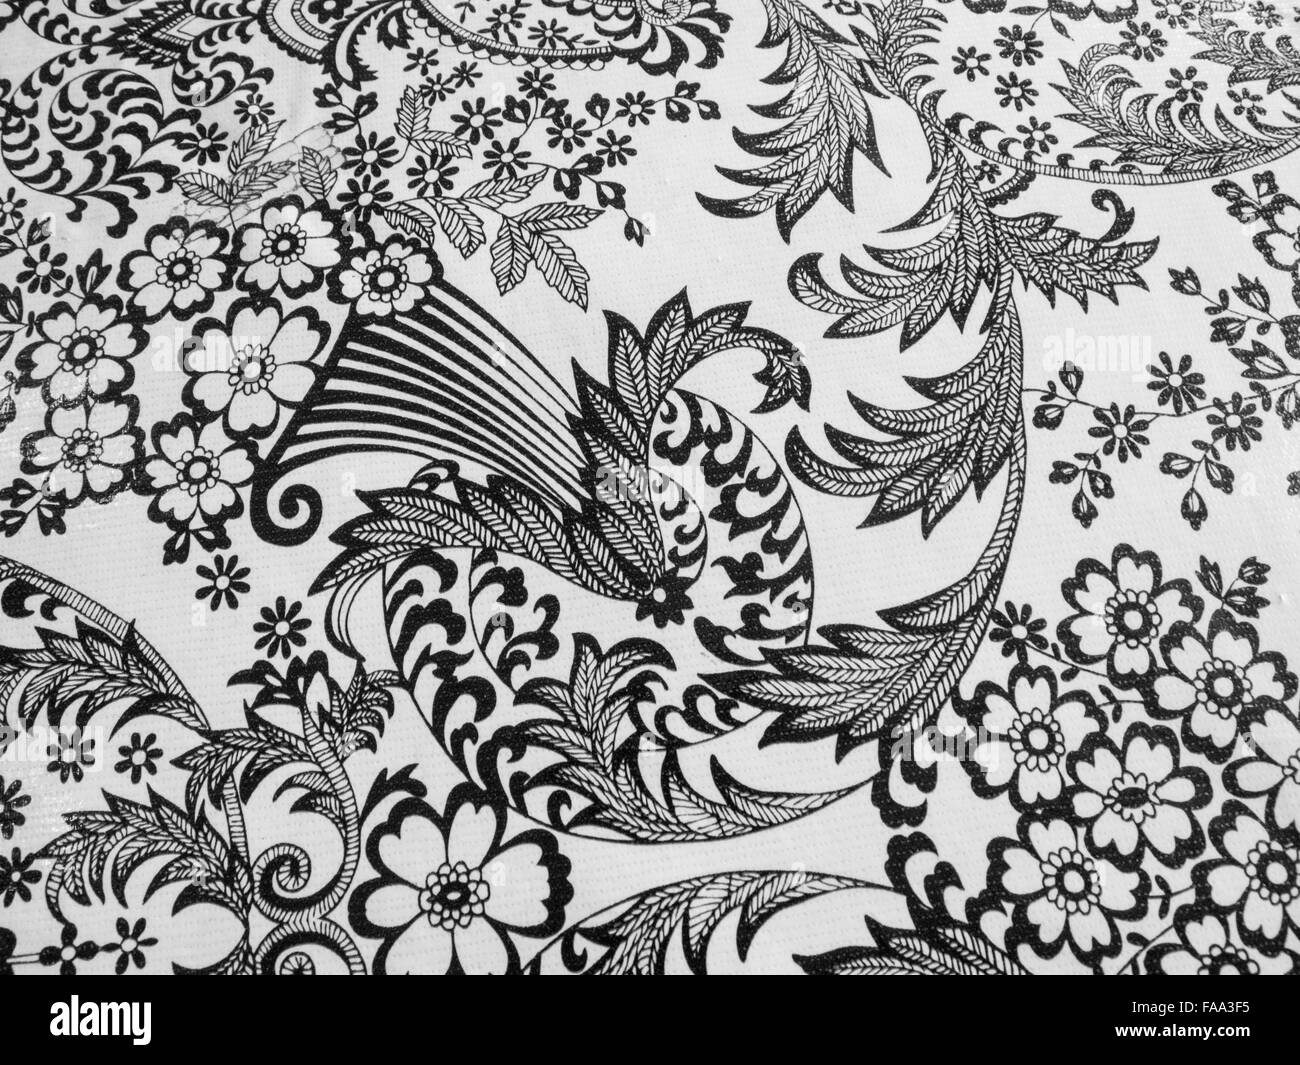 Close up of black and white tablecloth design - Stock Image